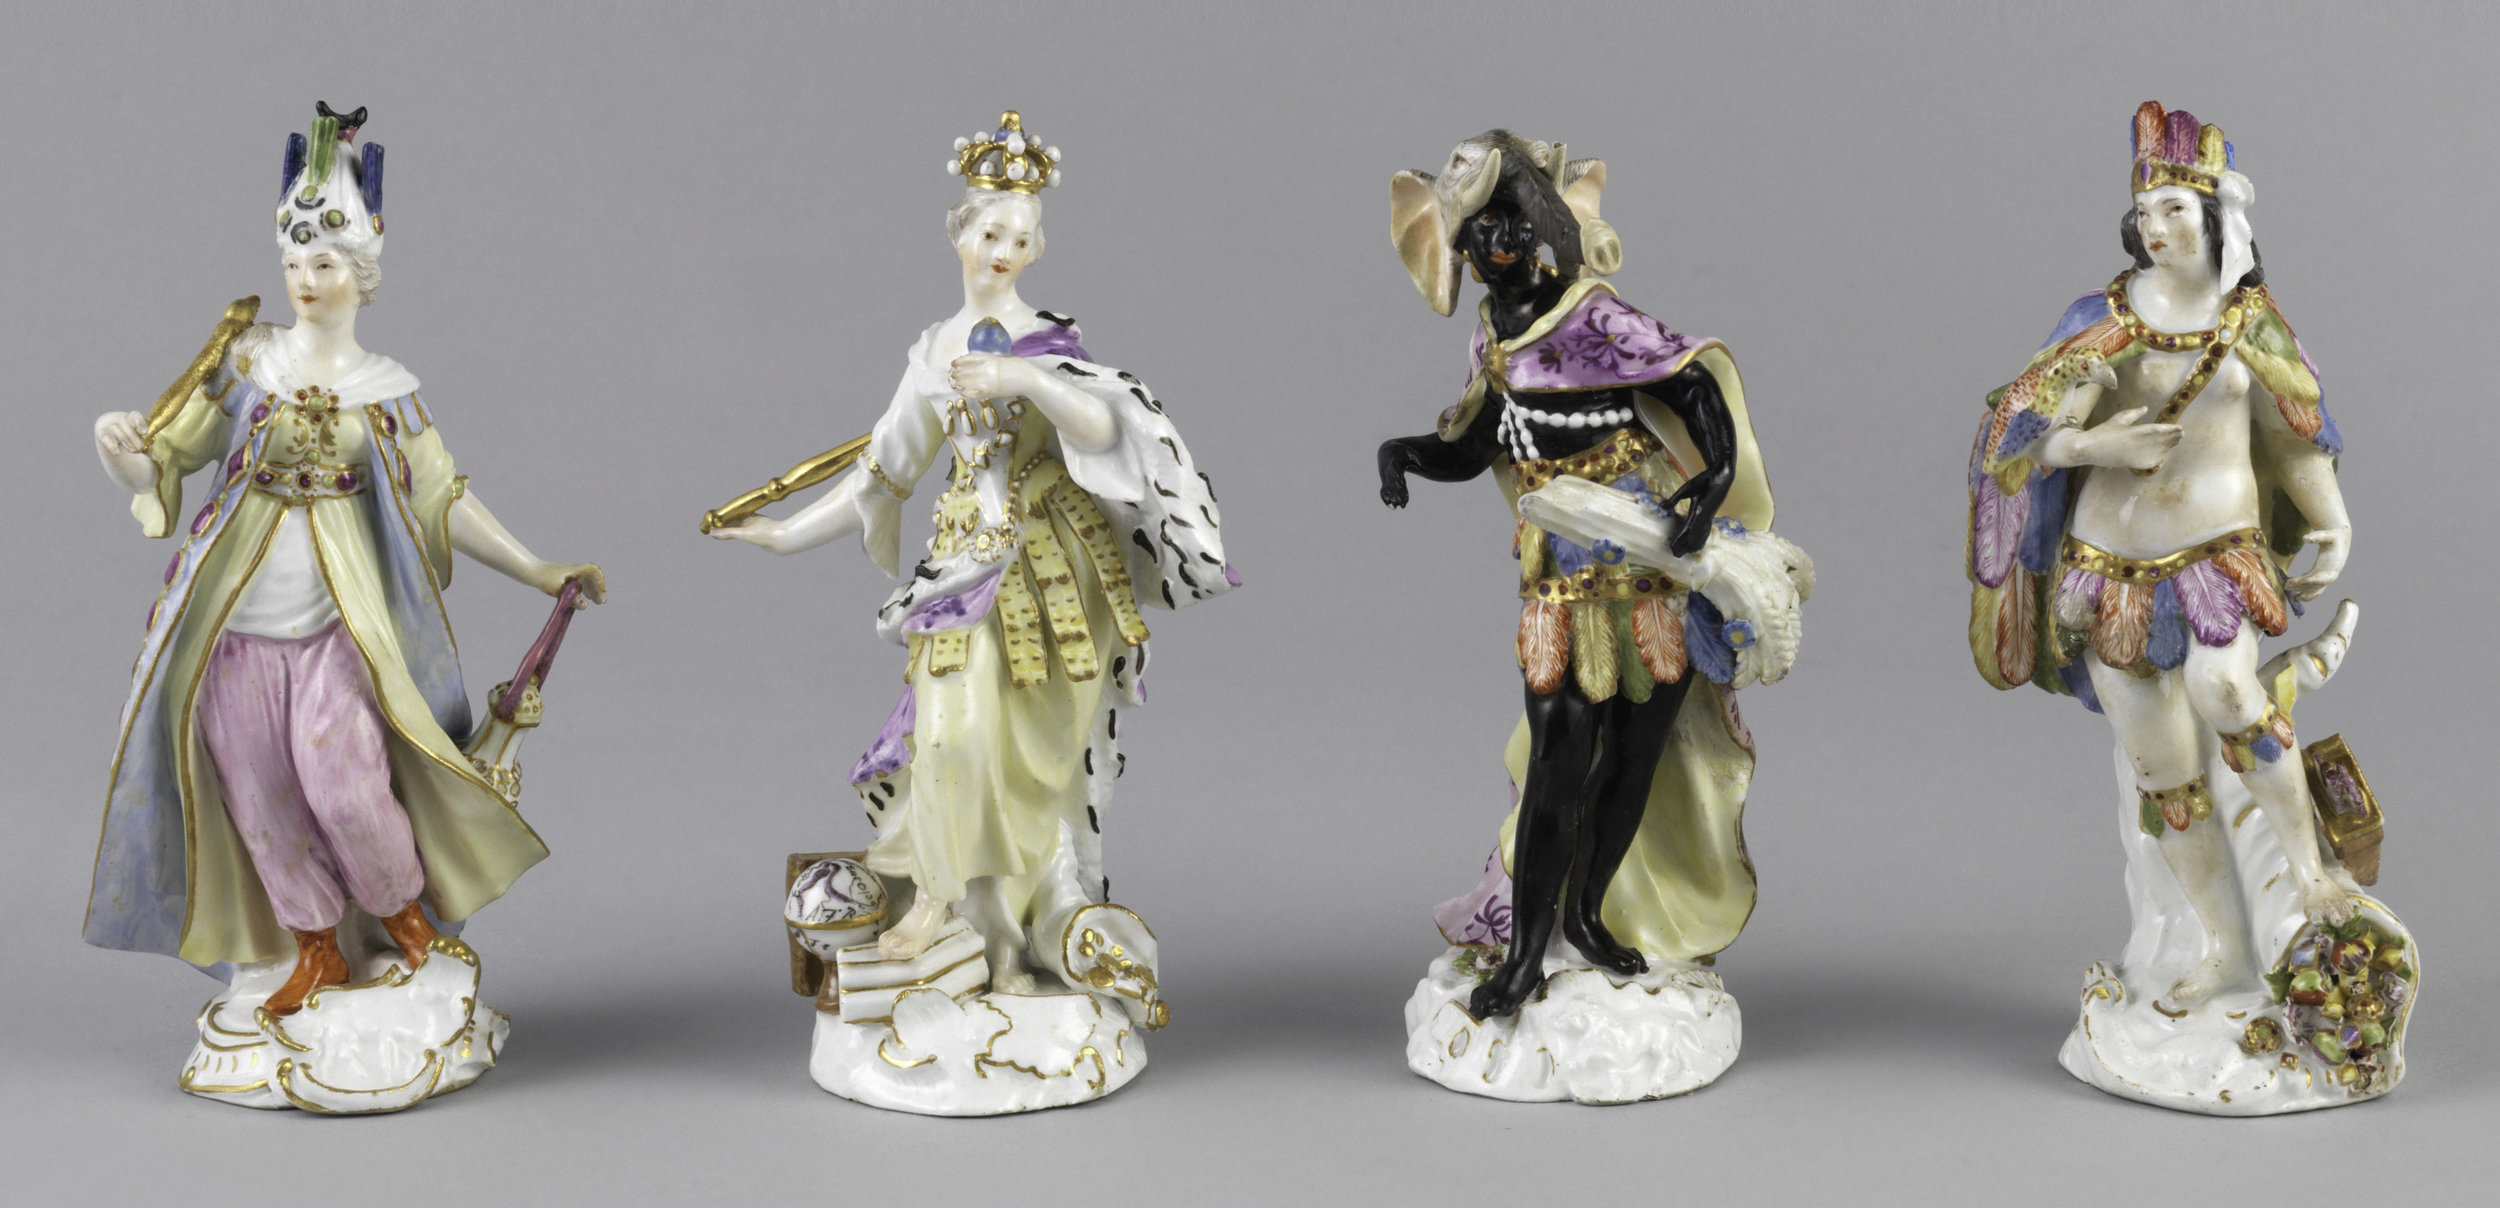 The Four Continents and their prejudicial portrayals, rendered in porcelain.